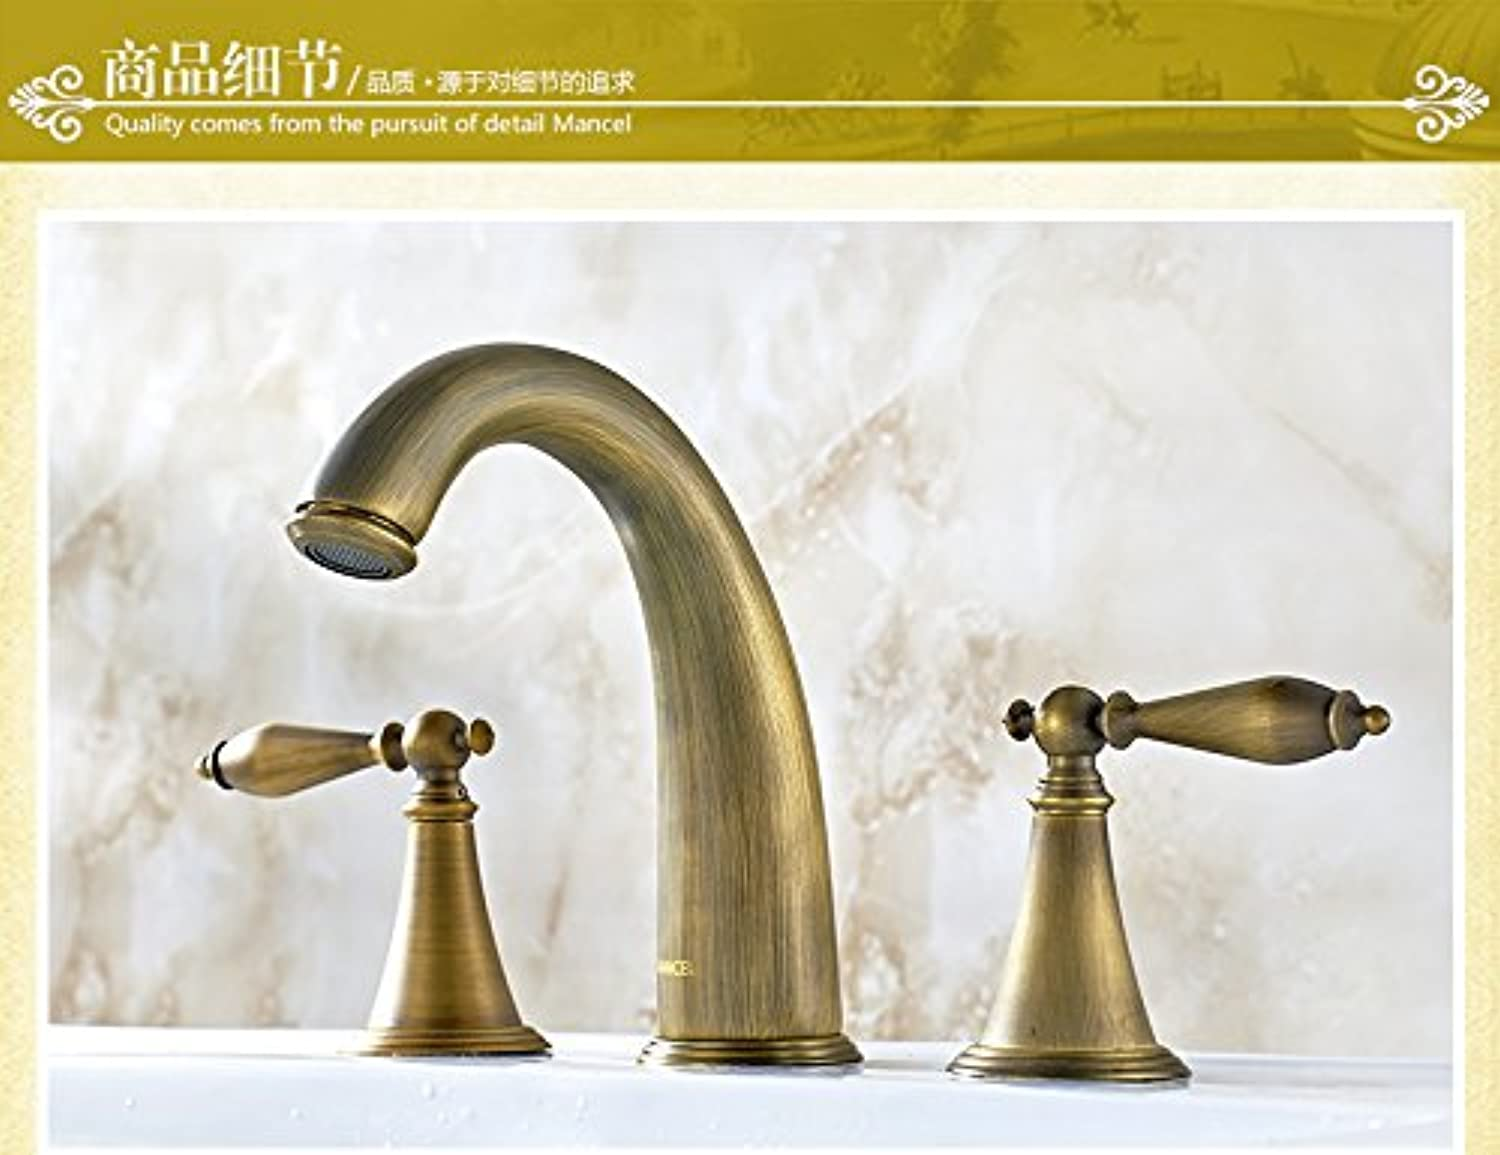 Gyps Faucet Basin Mixer Tap Waterfall Faucet Antique Bathroom Mixer Bar Mixer Shower Set Tap antique bathroom faucet The copper basin faucet antique antique split two to three holes in the antique spl